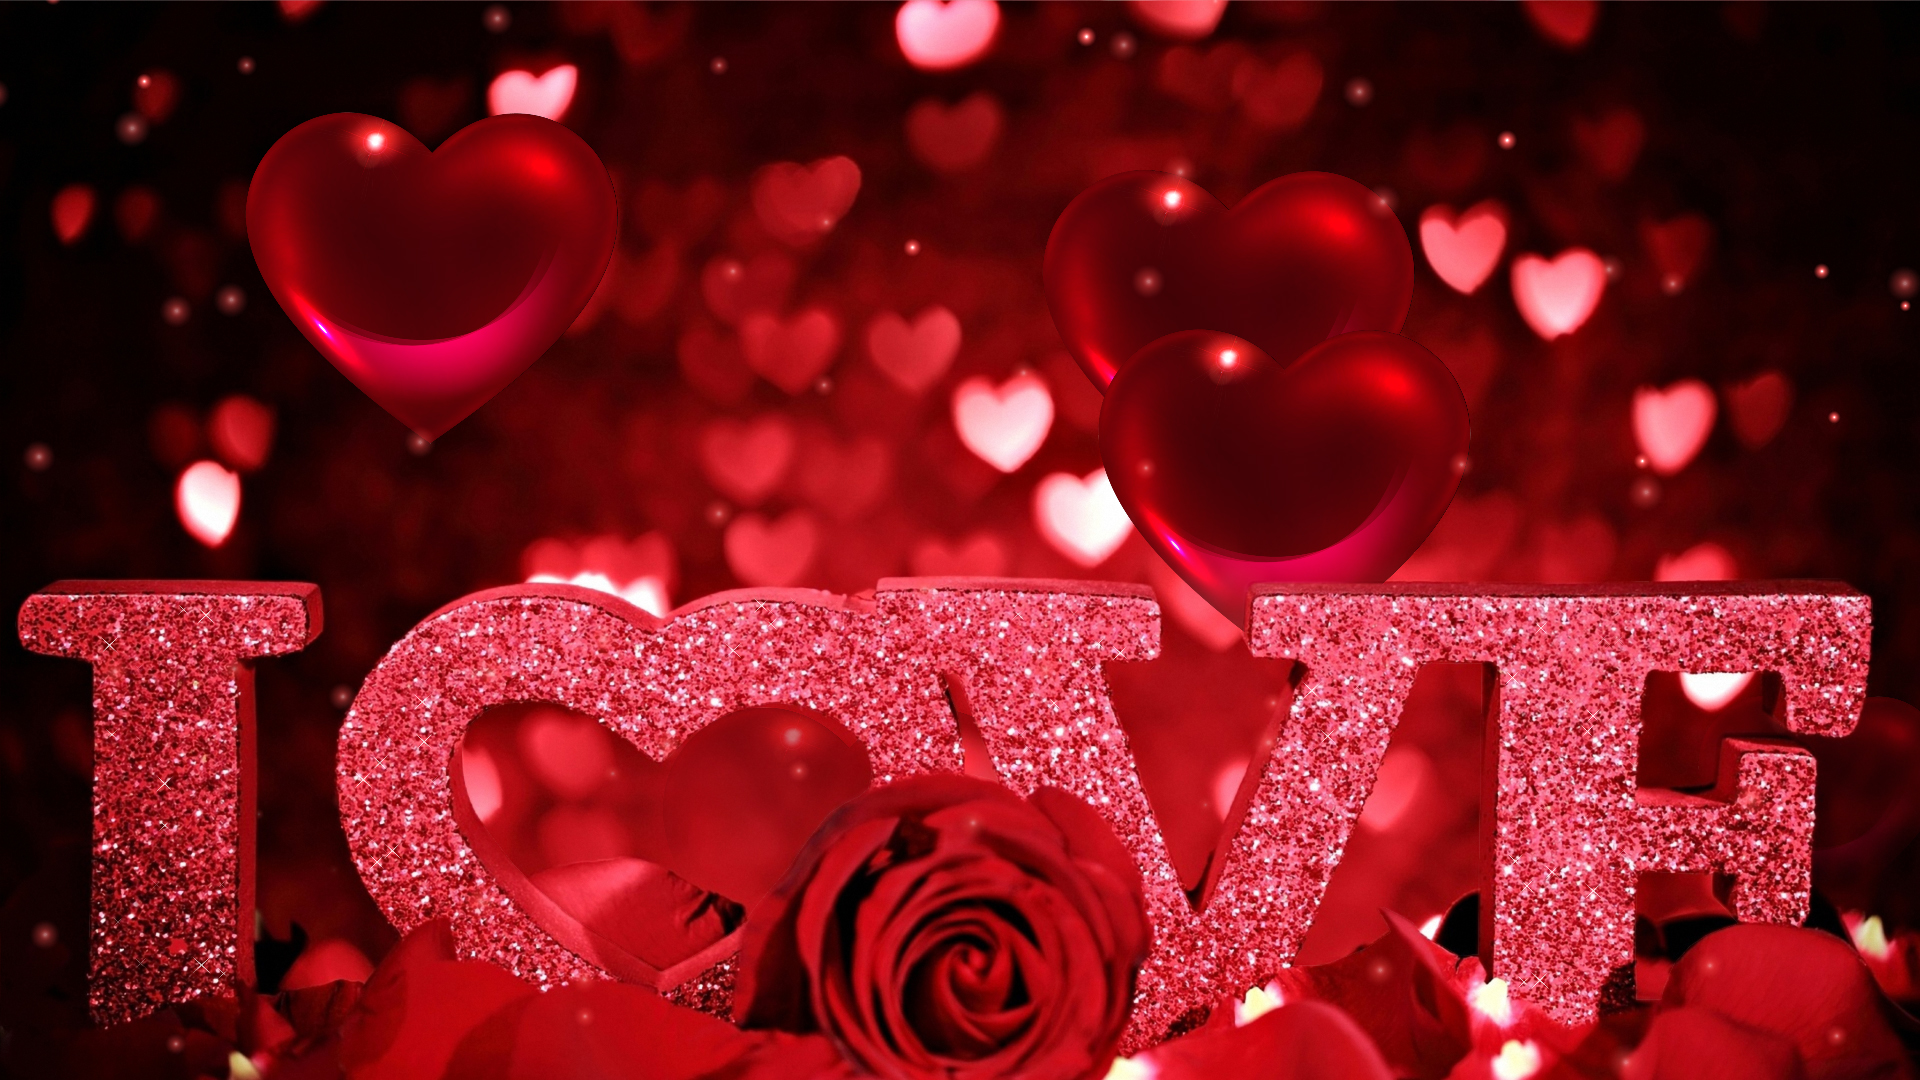 Love Wallpapers Screensavers : Download Hearts Screensaver - Romantic Hearts Screensaver ...